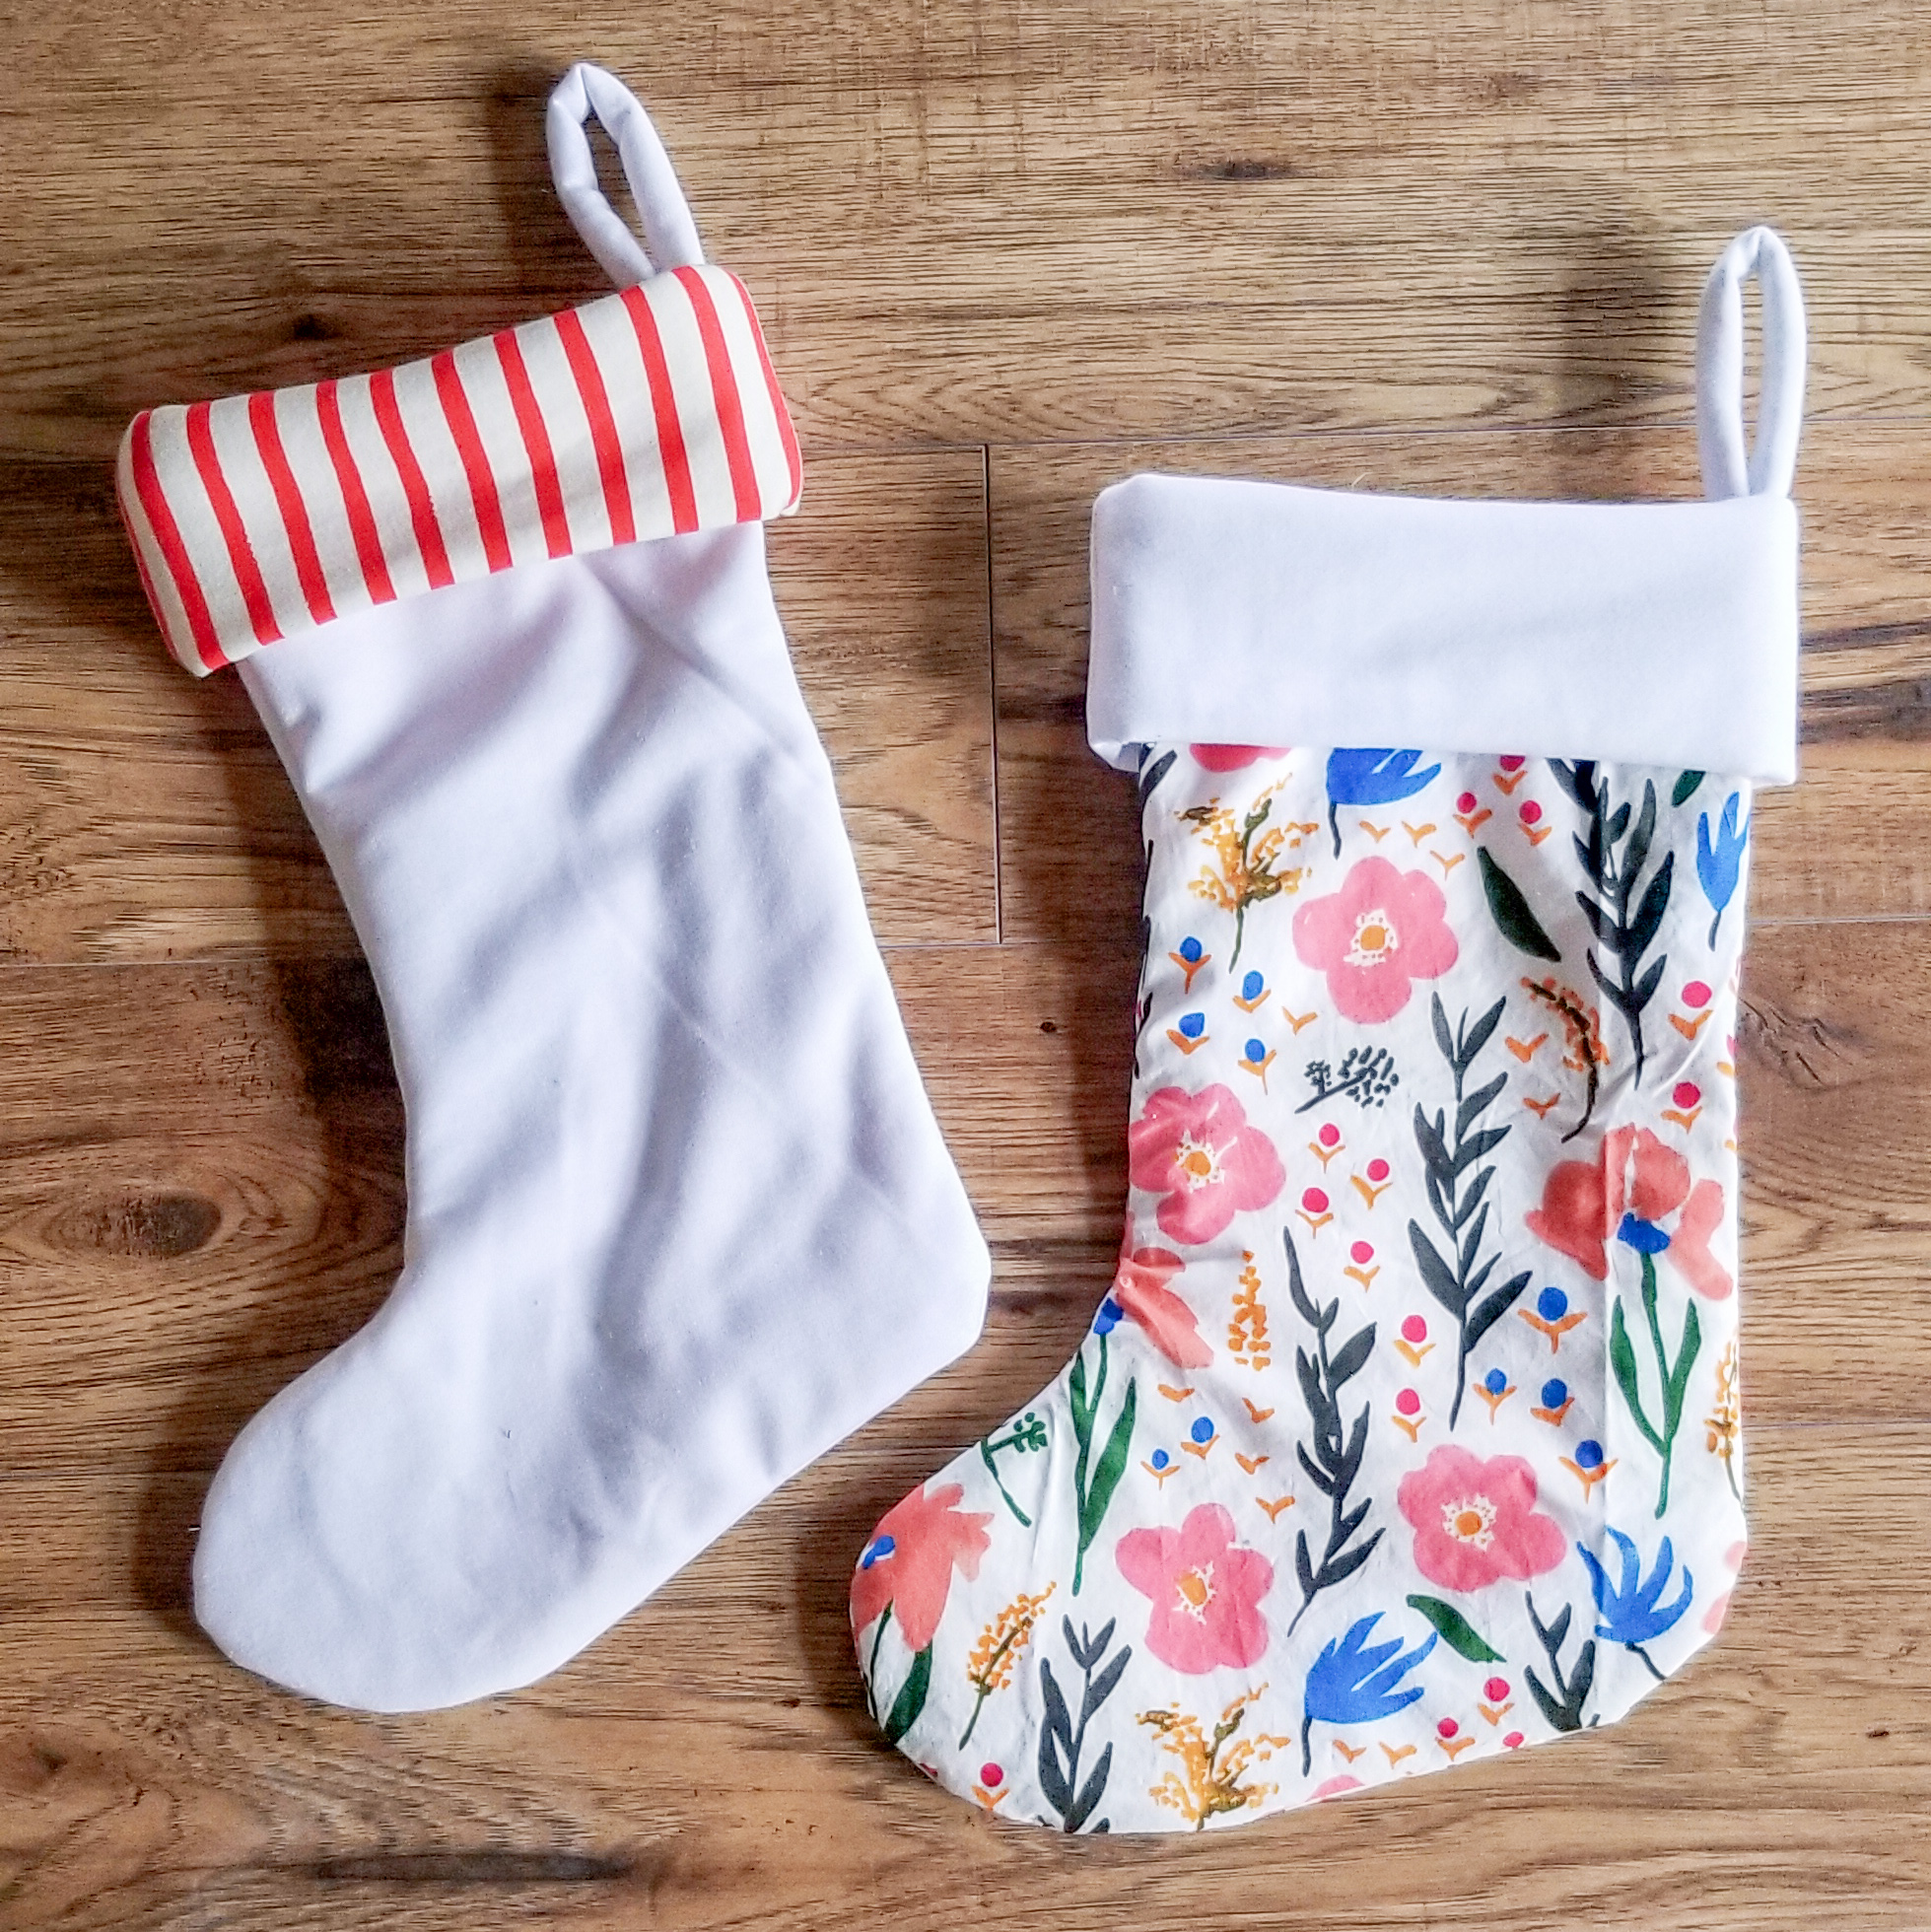 Fabric Info:   Red Striped cuff stocking- The outer shell is similar to  Organic Cotton Sweatshirt Fleece PFD Natural Fabric  and the inside and cuff is  Saltwater Sailor Stripe Organic Cotton Fabric, Candy Cane   Floral Stocking- The outer shell is  Organic Print Cotton Cloud 9 Juliet Meeks Gather Day Dream White  and the inside and cuff is similar to  Organic Cotton Sweatshirt Fleece PFD Natural Fabric